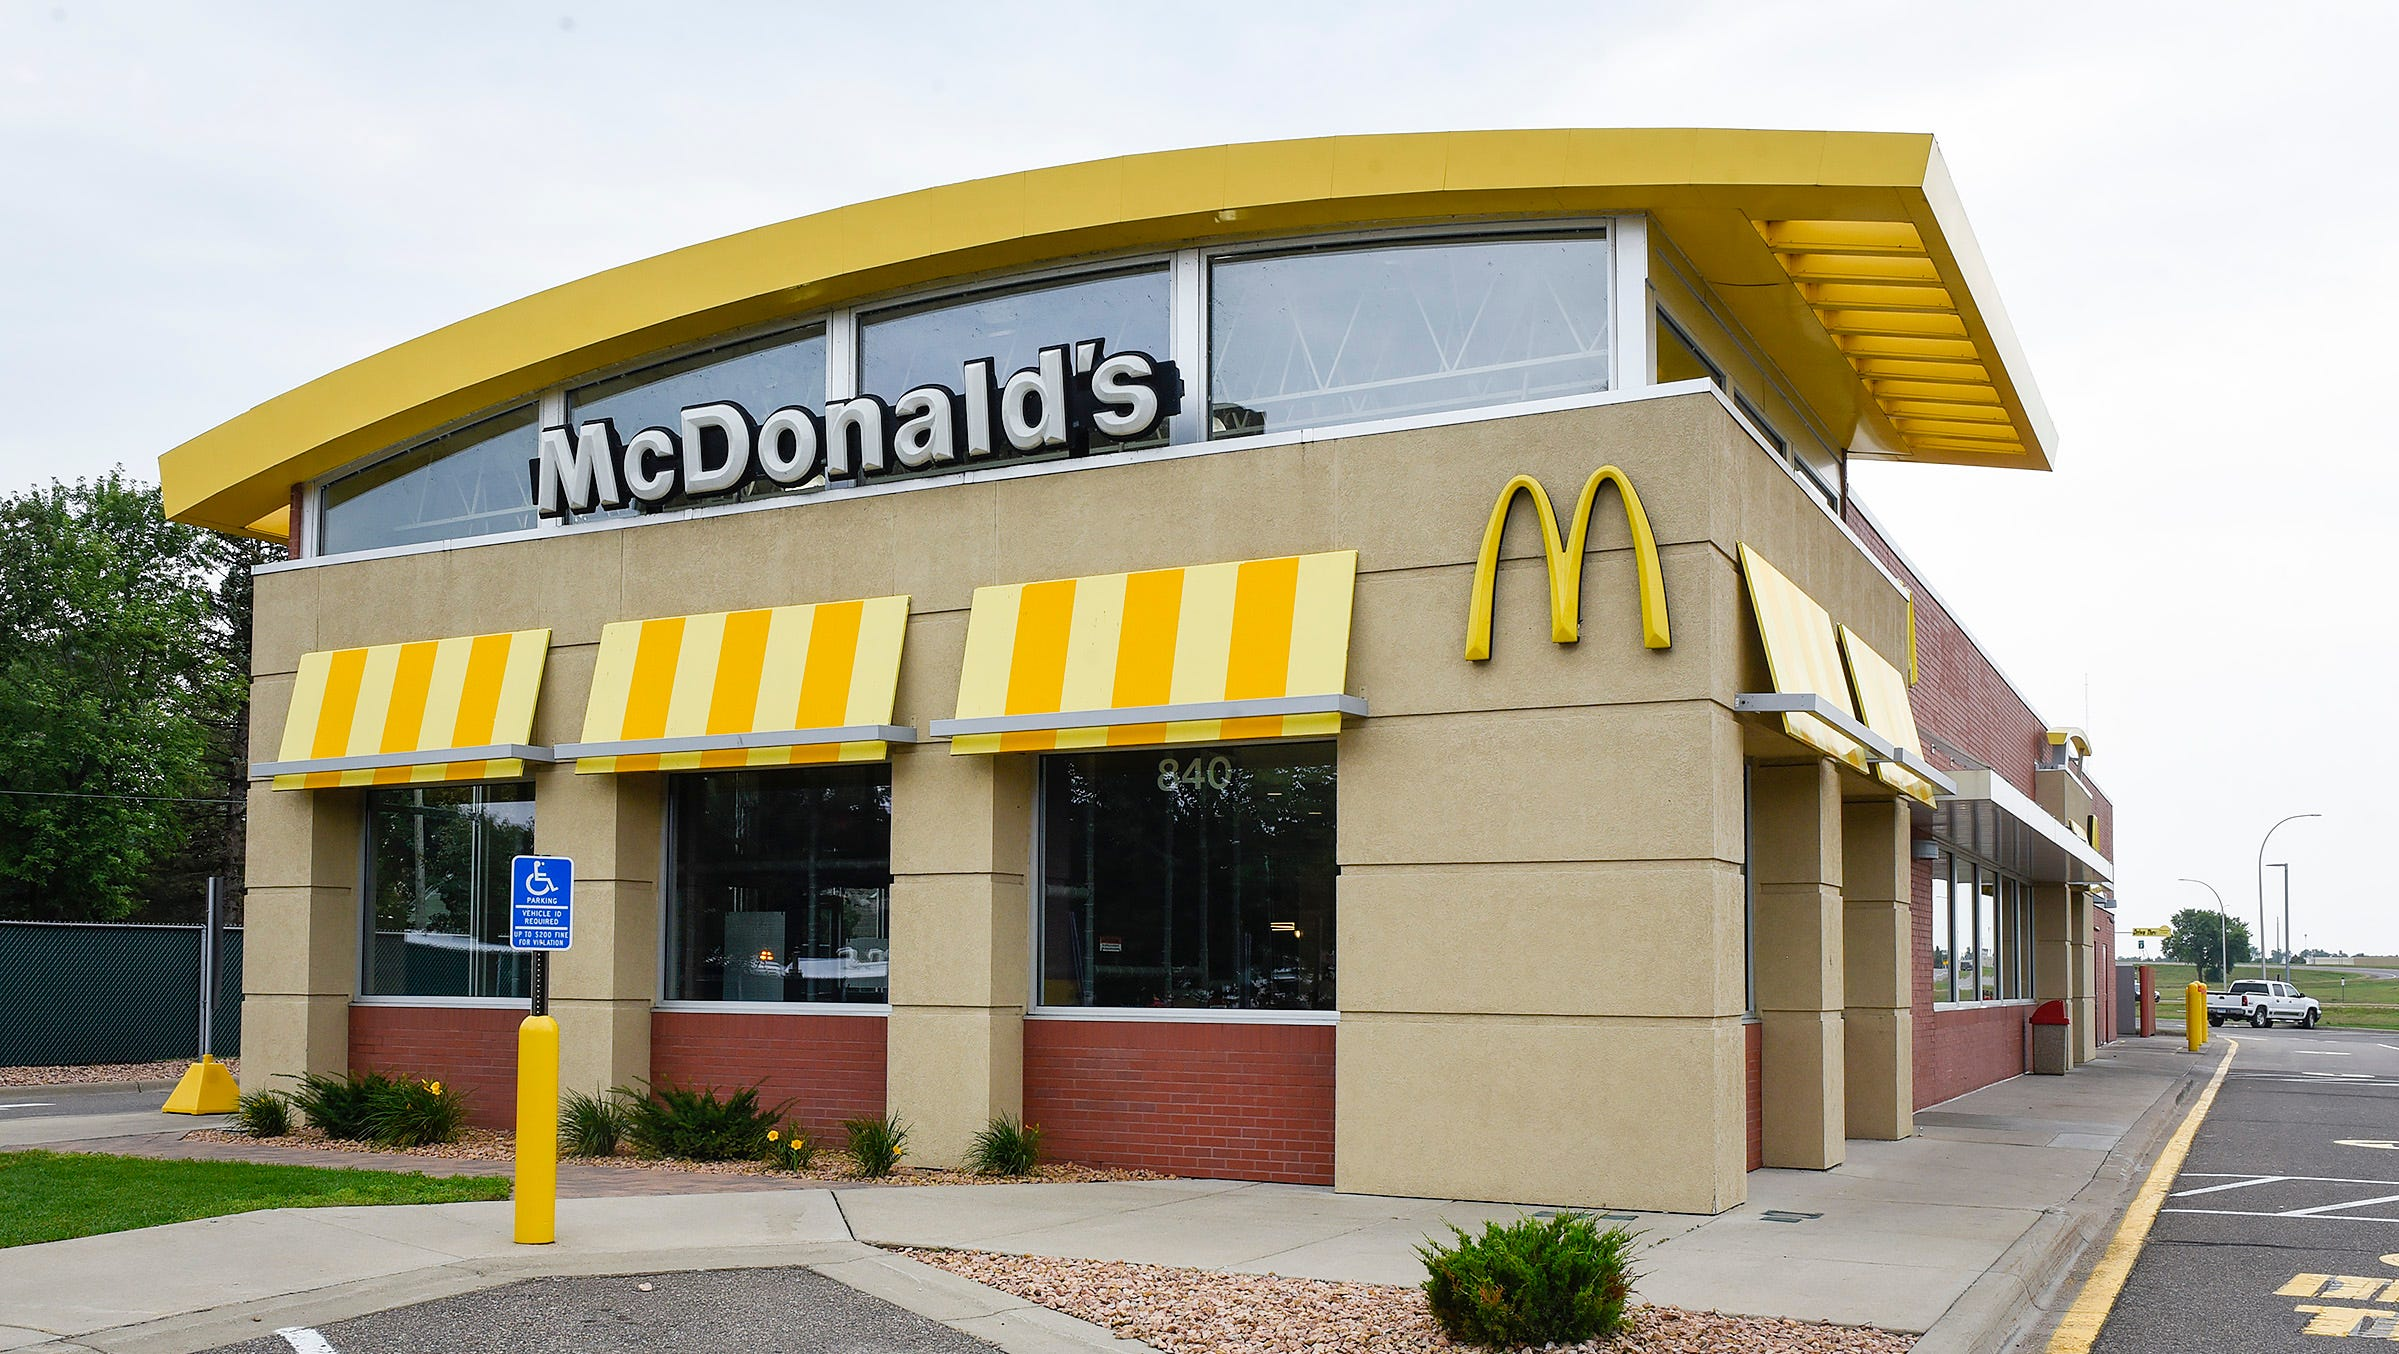 The McDonald's at840 East St. Germain St. in St. Cloud is shown Tuesday, Aug. 2. It has been updated with the corporation's new look.